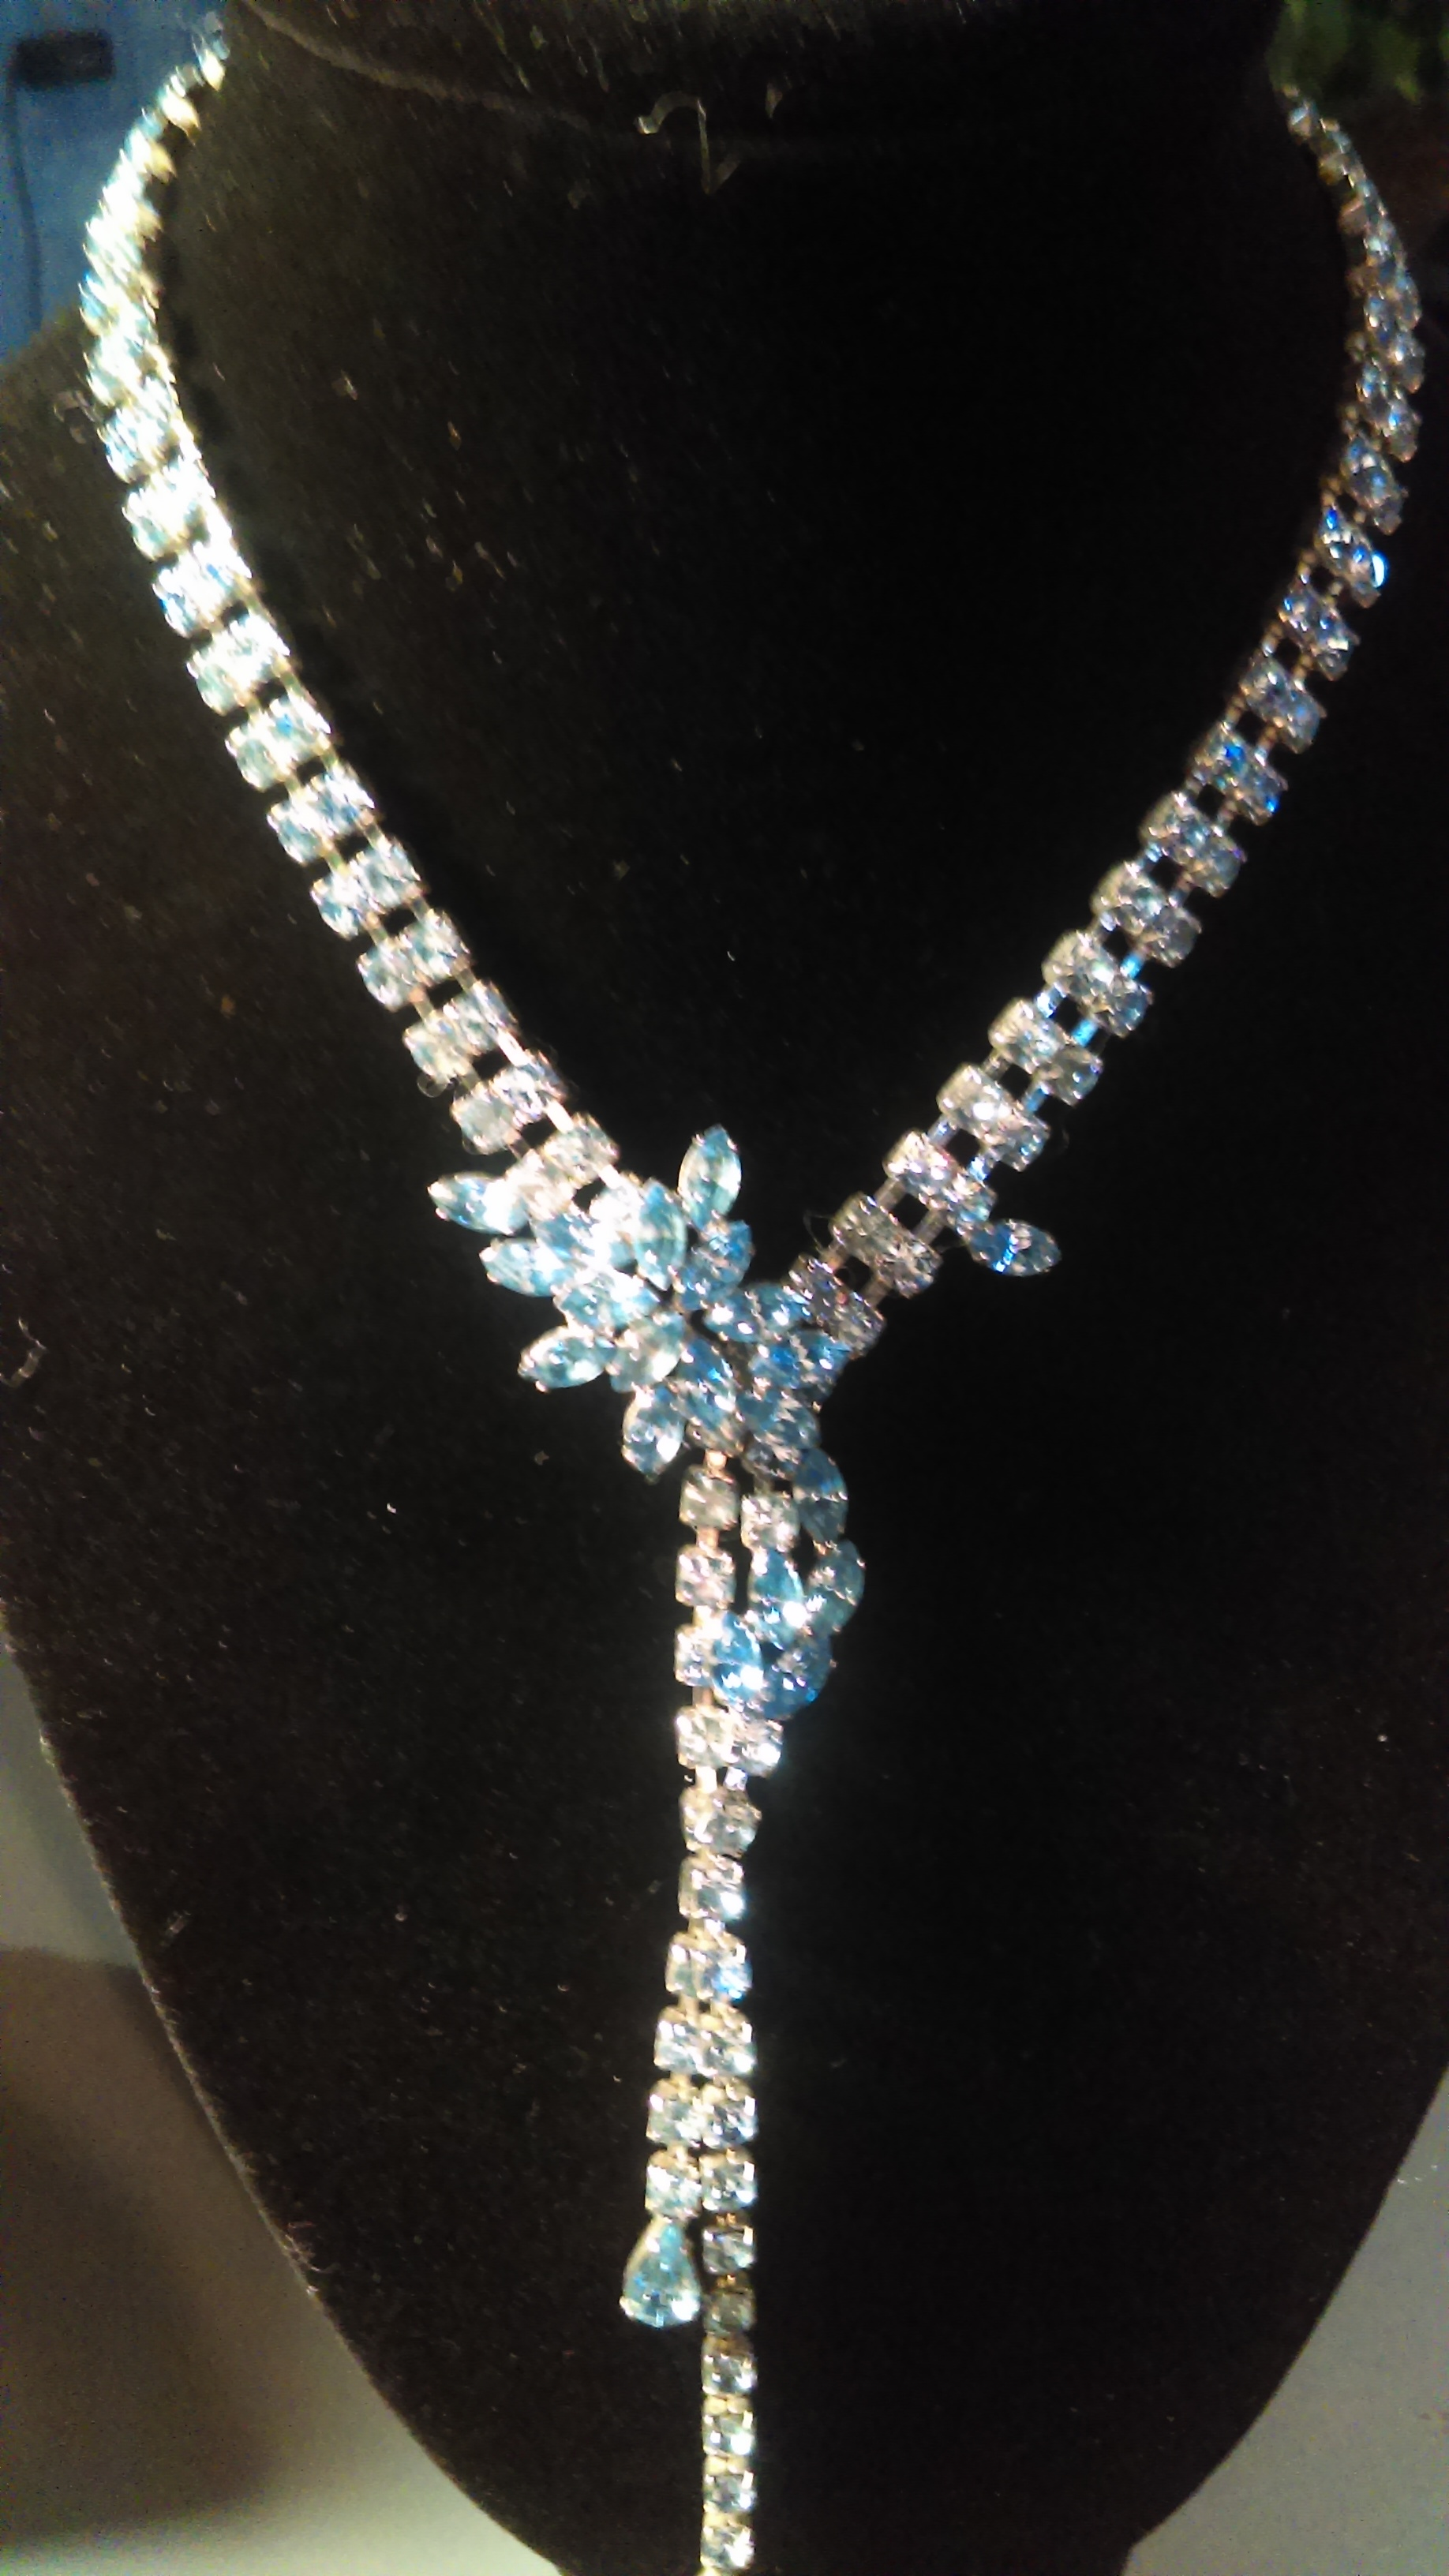 Neclace with swarovsky elements